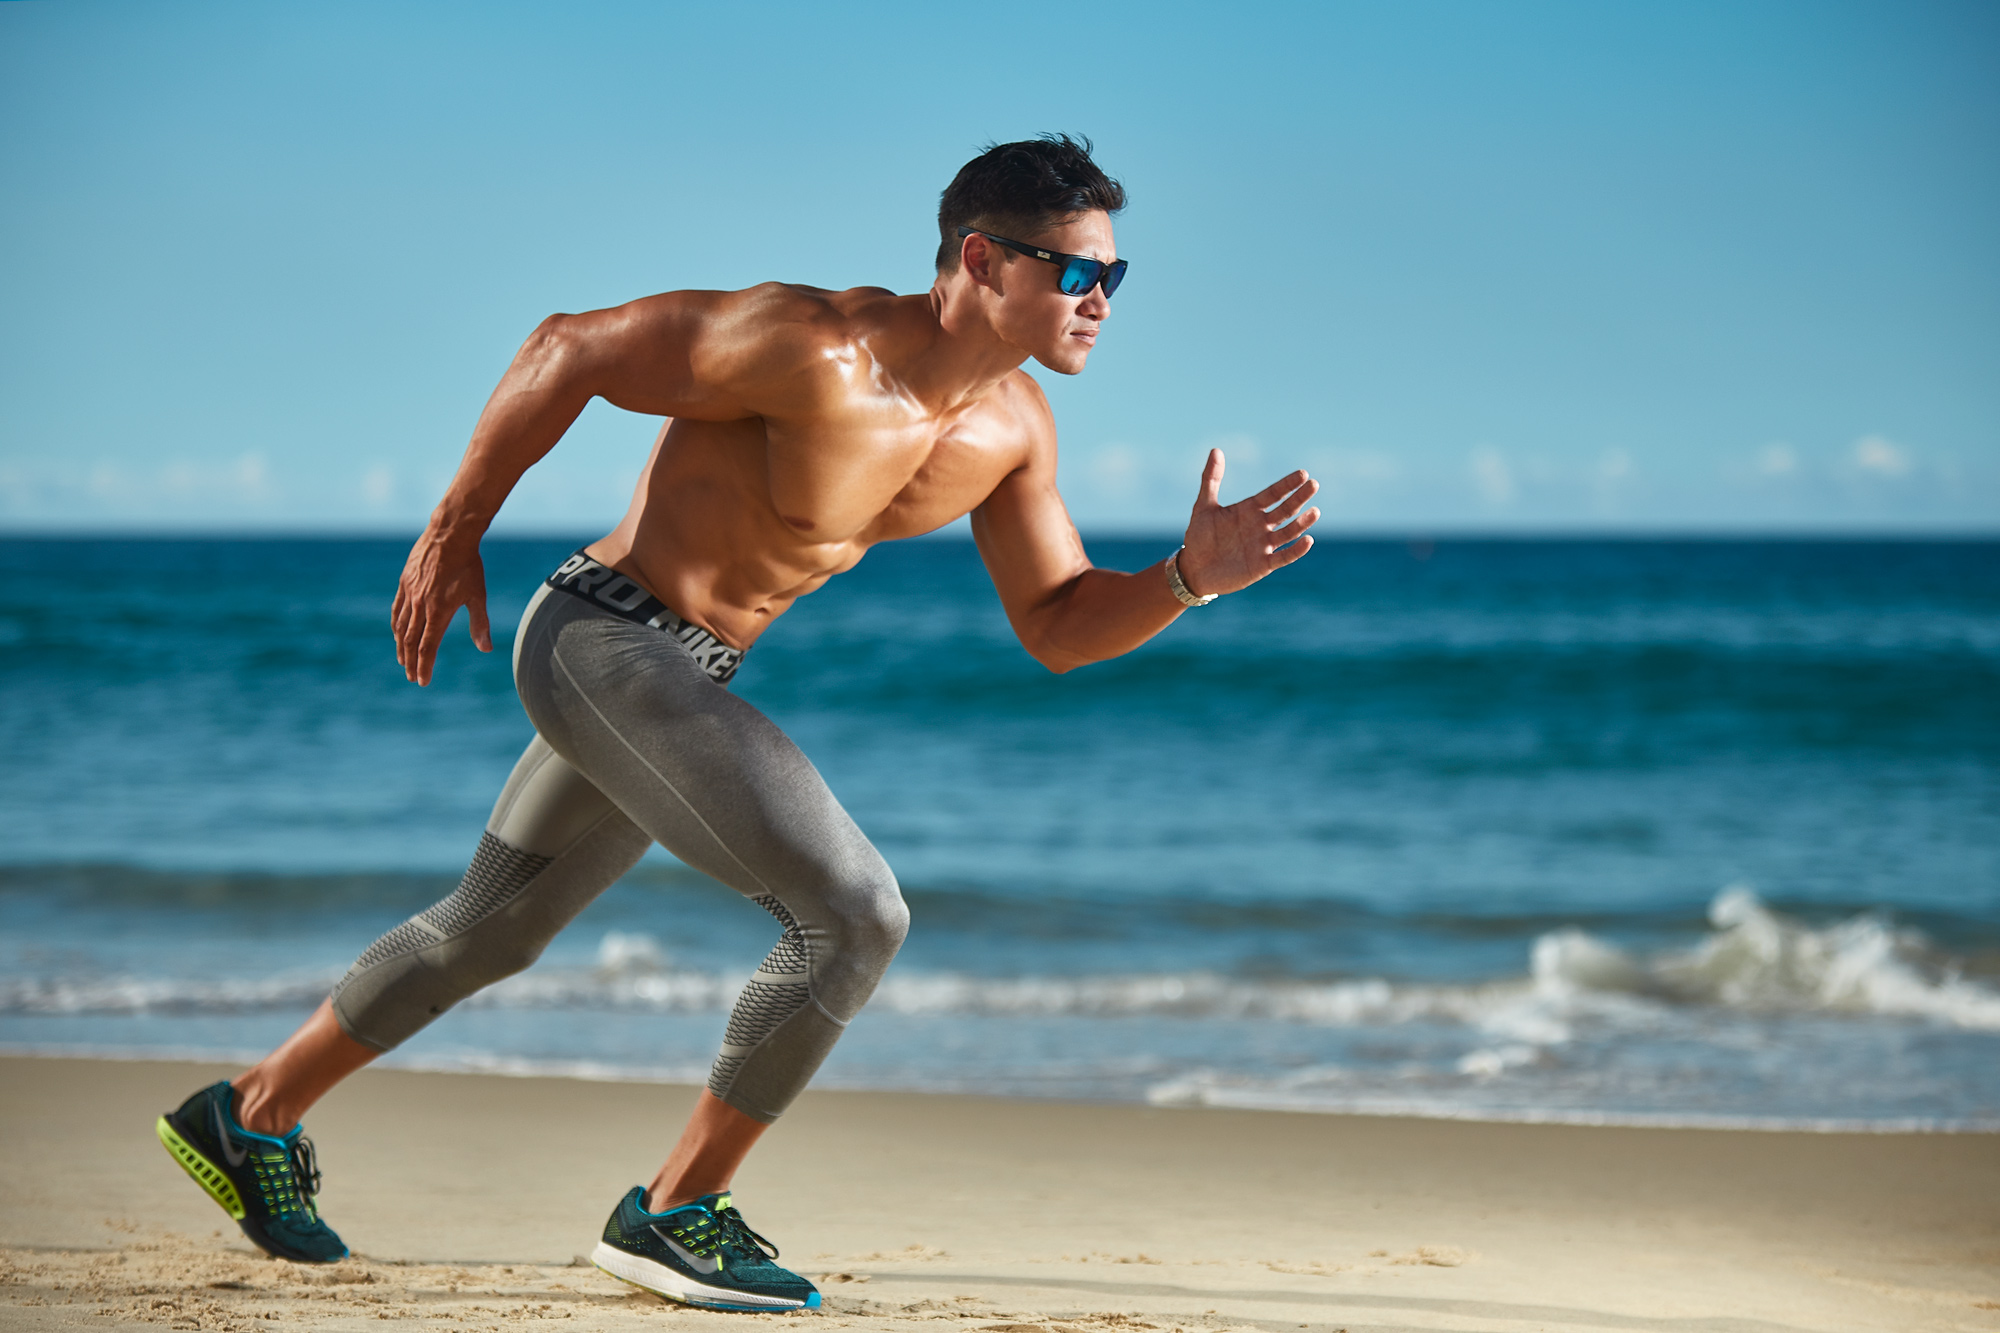 Andrew Mc running in Nike pro compression pants along Queensland beach